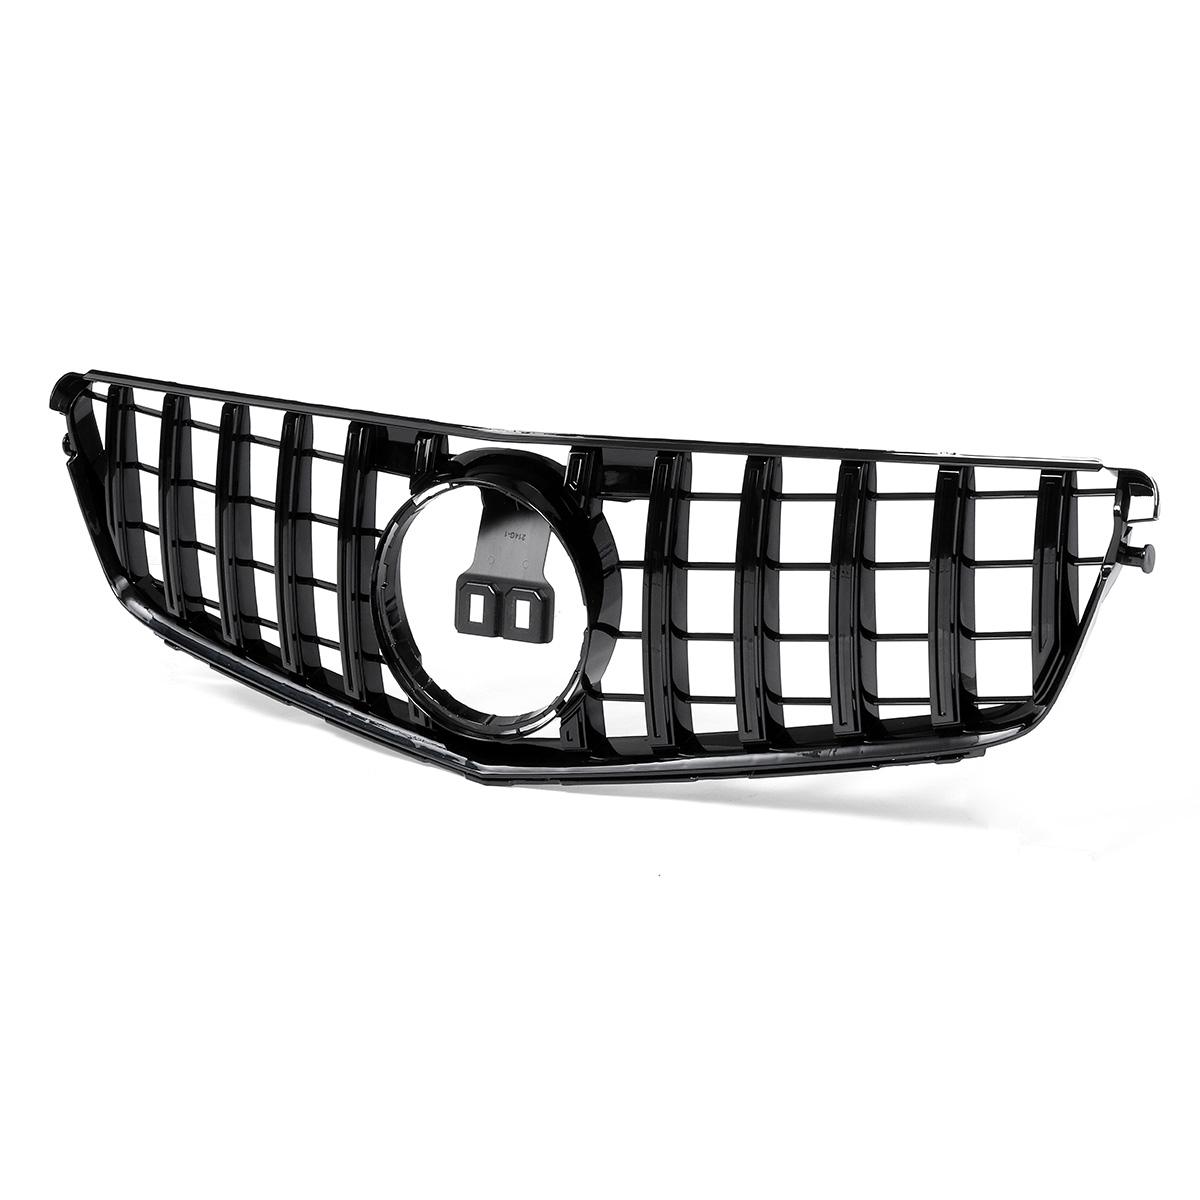 Car GTR Style Grille Front Bumper Grill Black for Mercedes